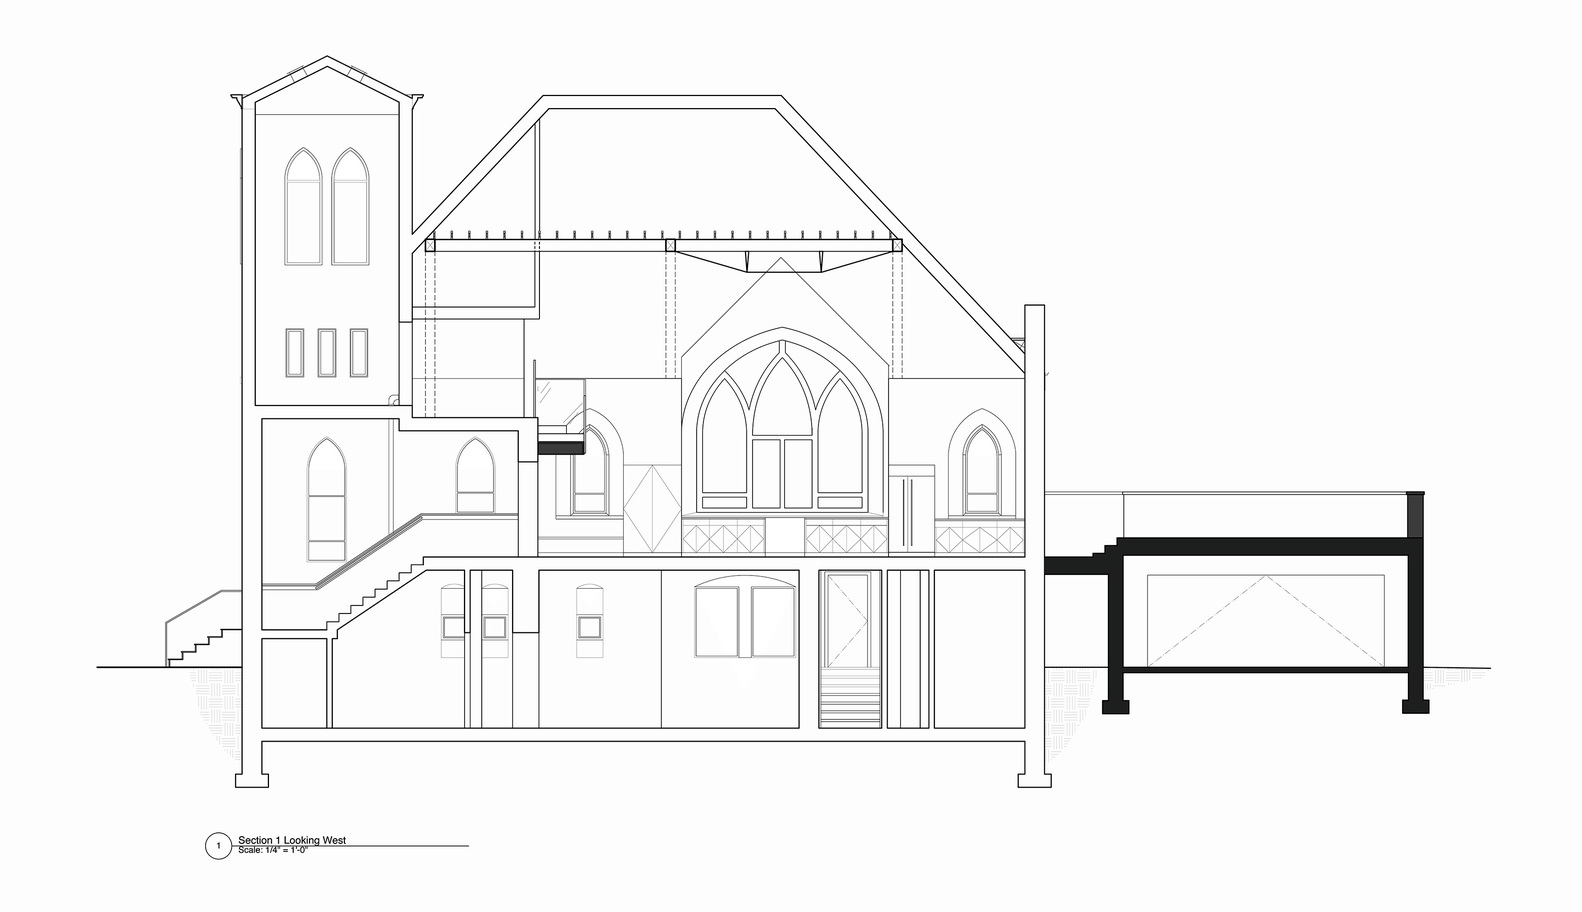 Architecture Drawing Kit gallery of church conversion into a residence / linc thelen design